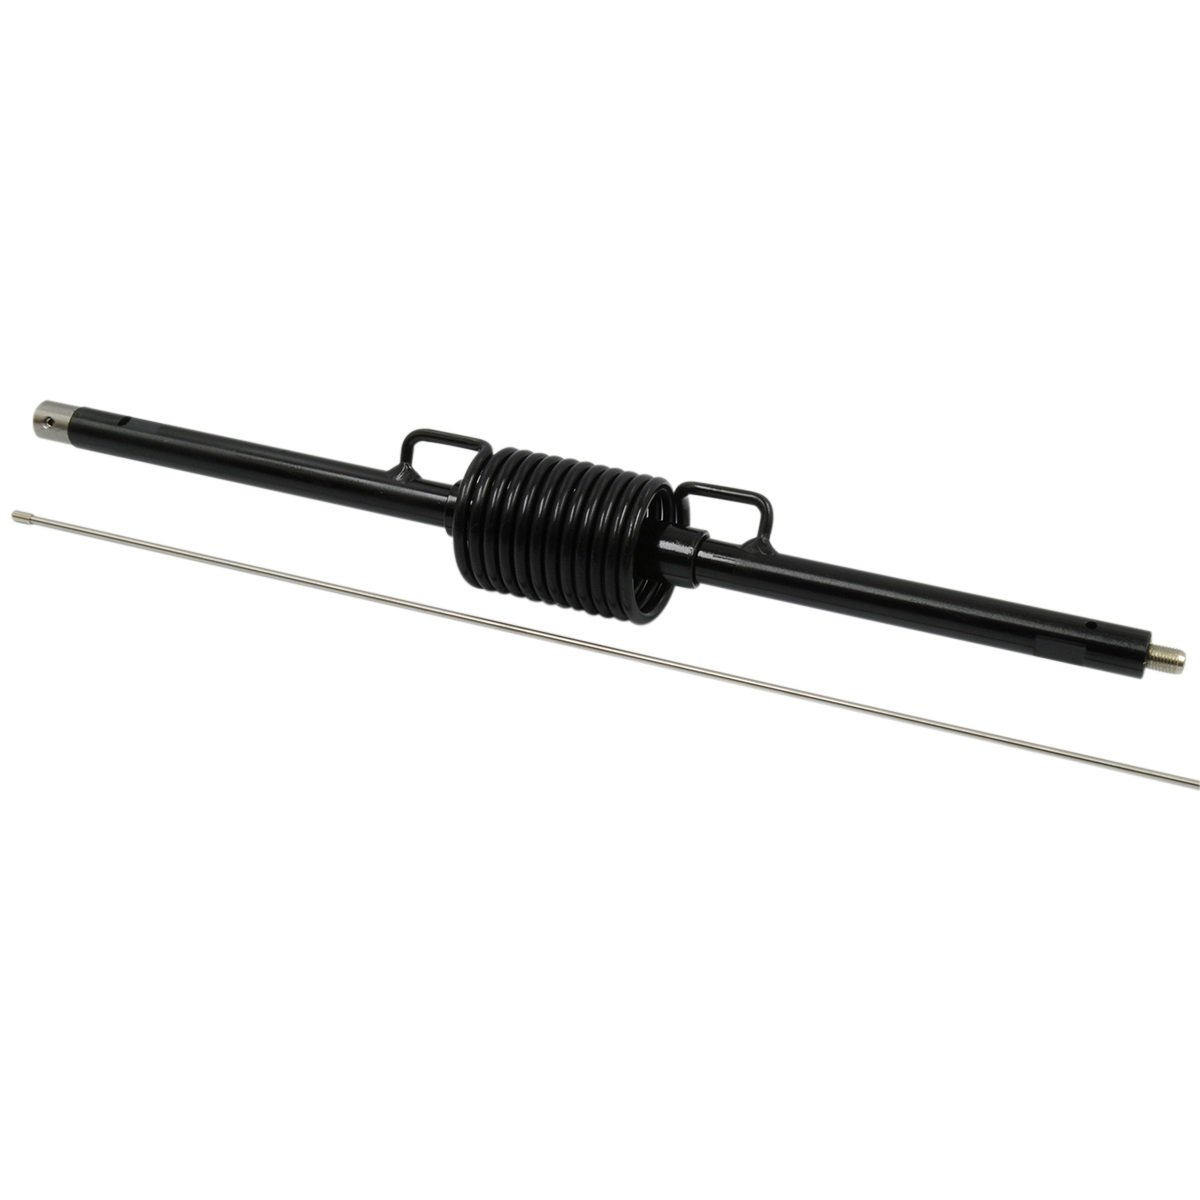 Pro Trucker 48'' Open Coil Antenna - 3,000 Watt Power Rating & Field Tuneable - Black Finish